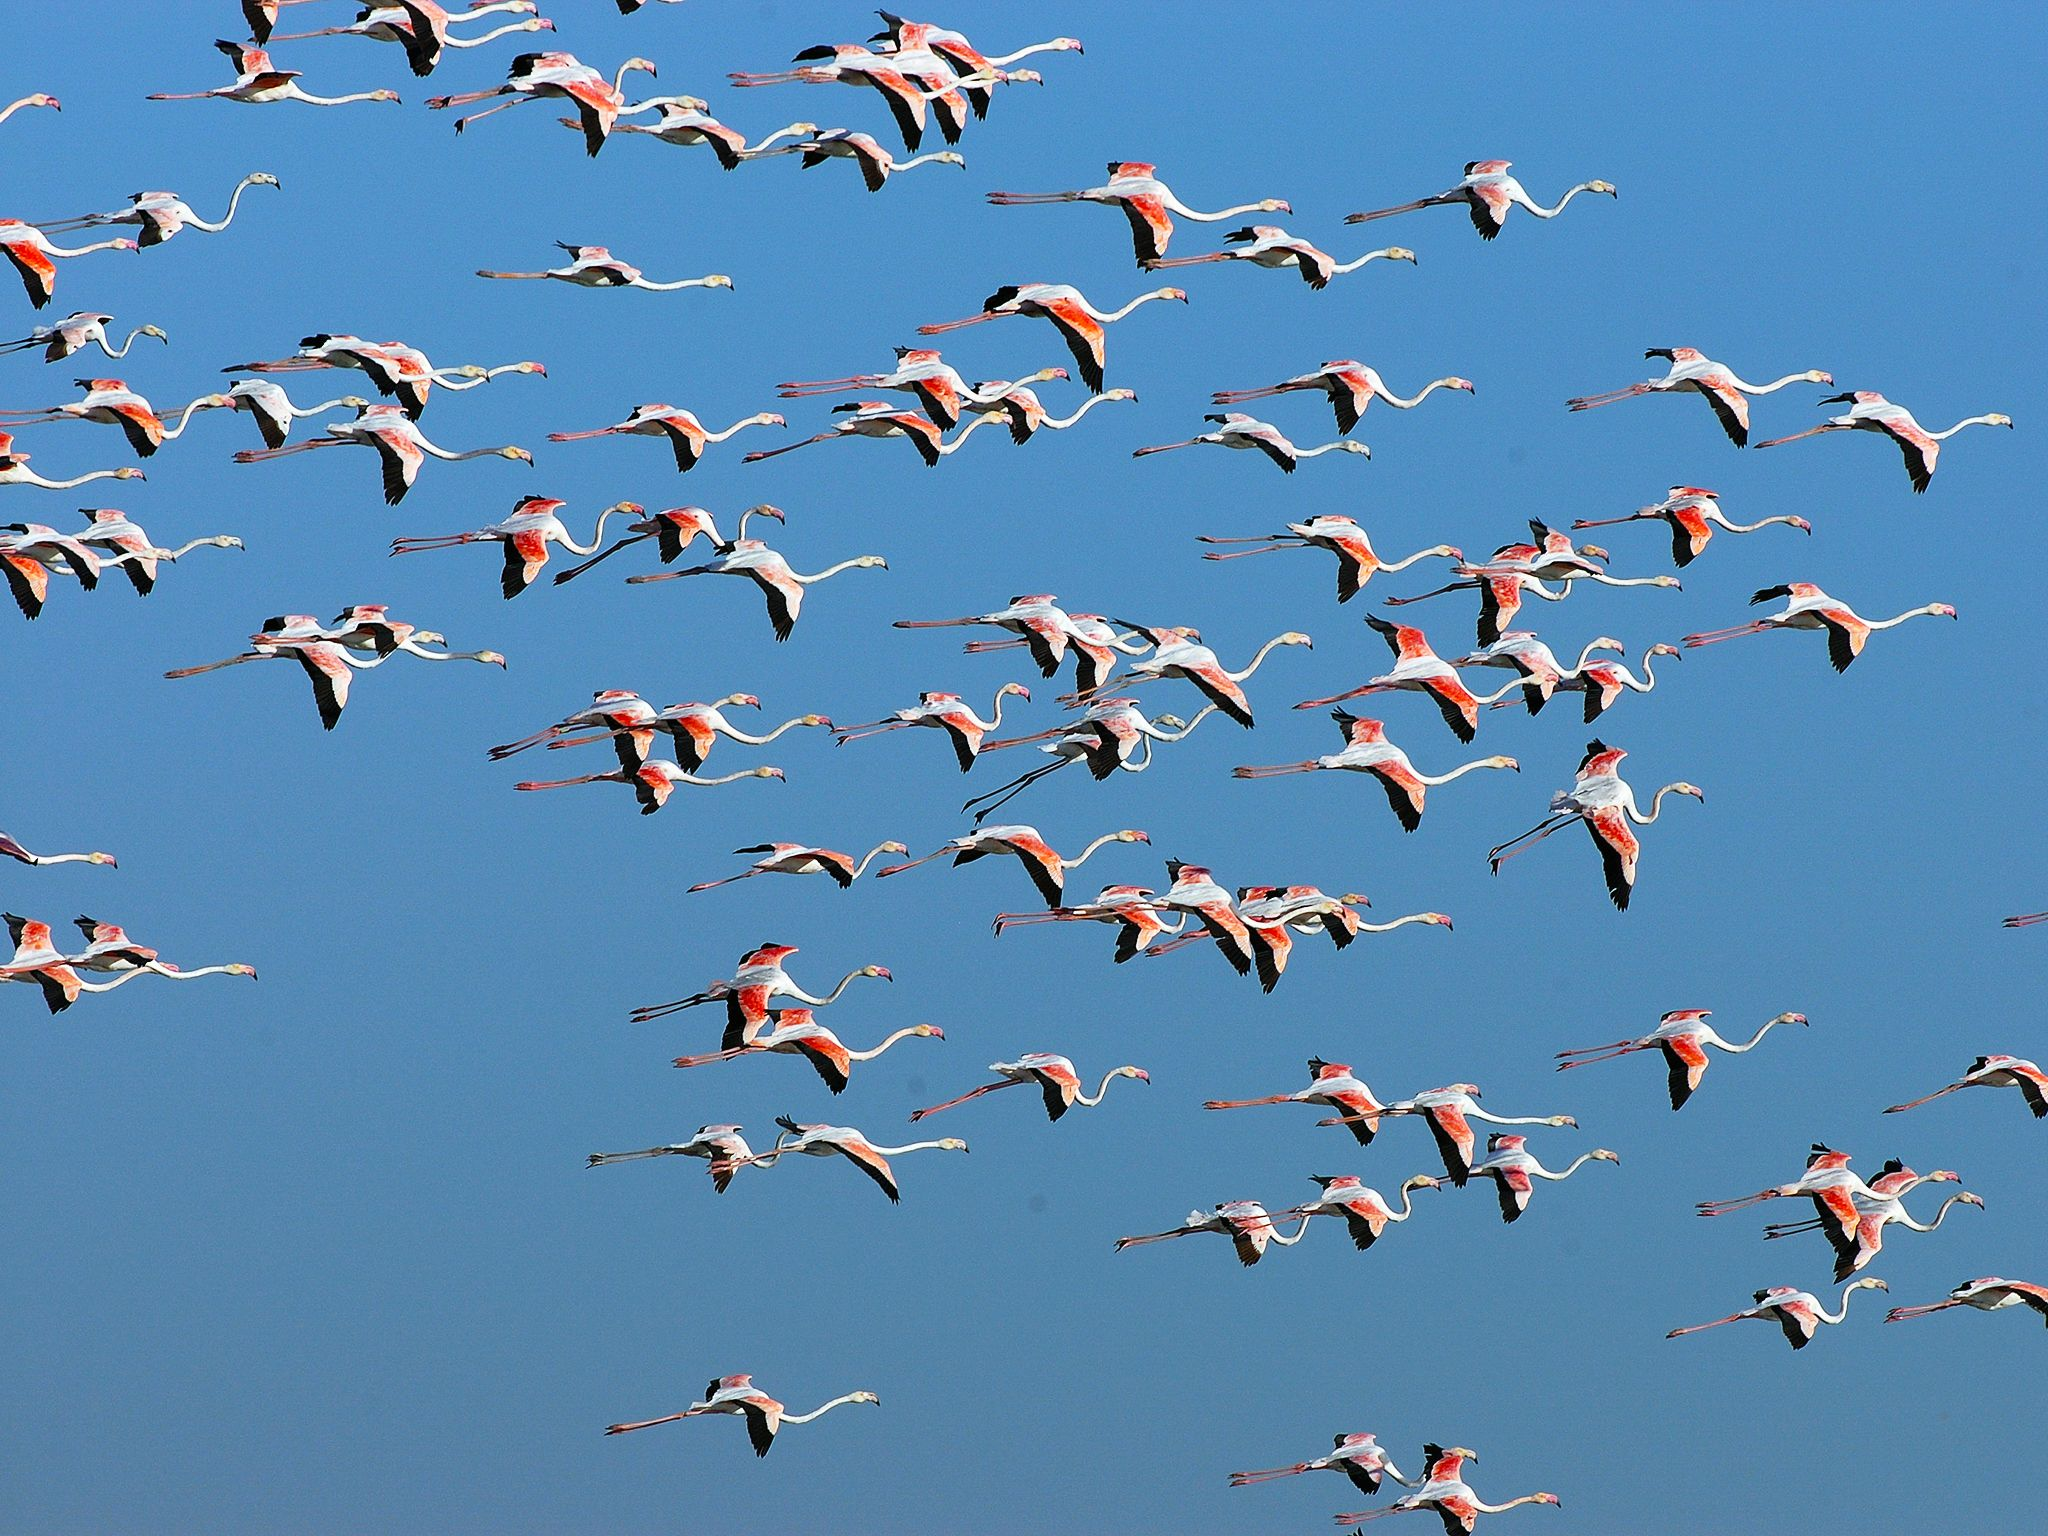 Spain: A group of vibrantly coloured flamingos takes flight in the Doñana region. These nomads... [Photo of the day - December 2014]